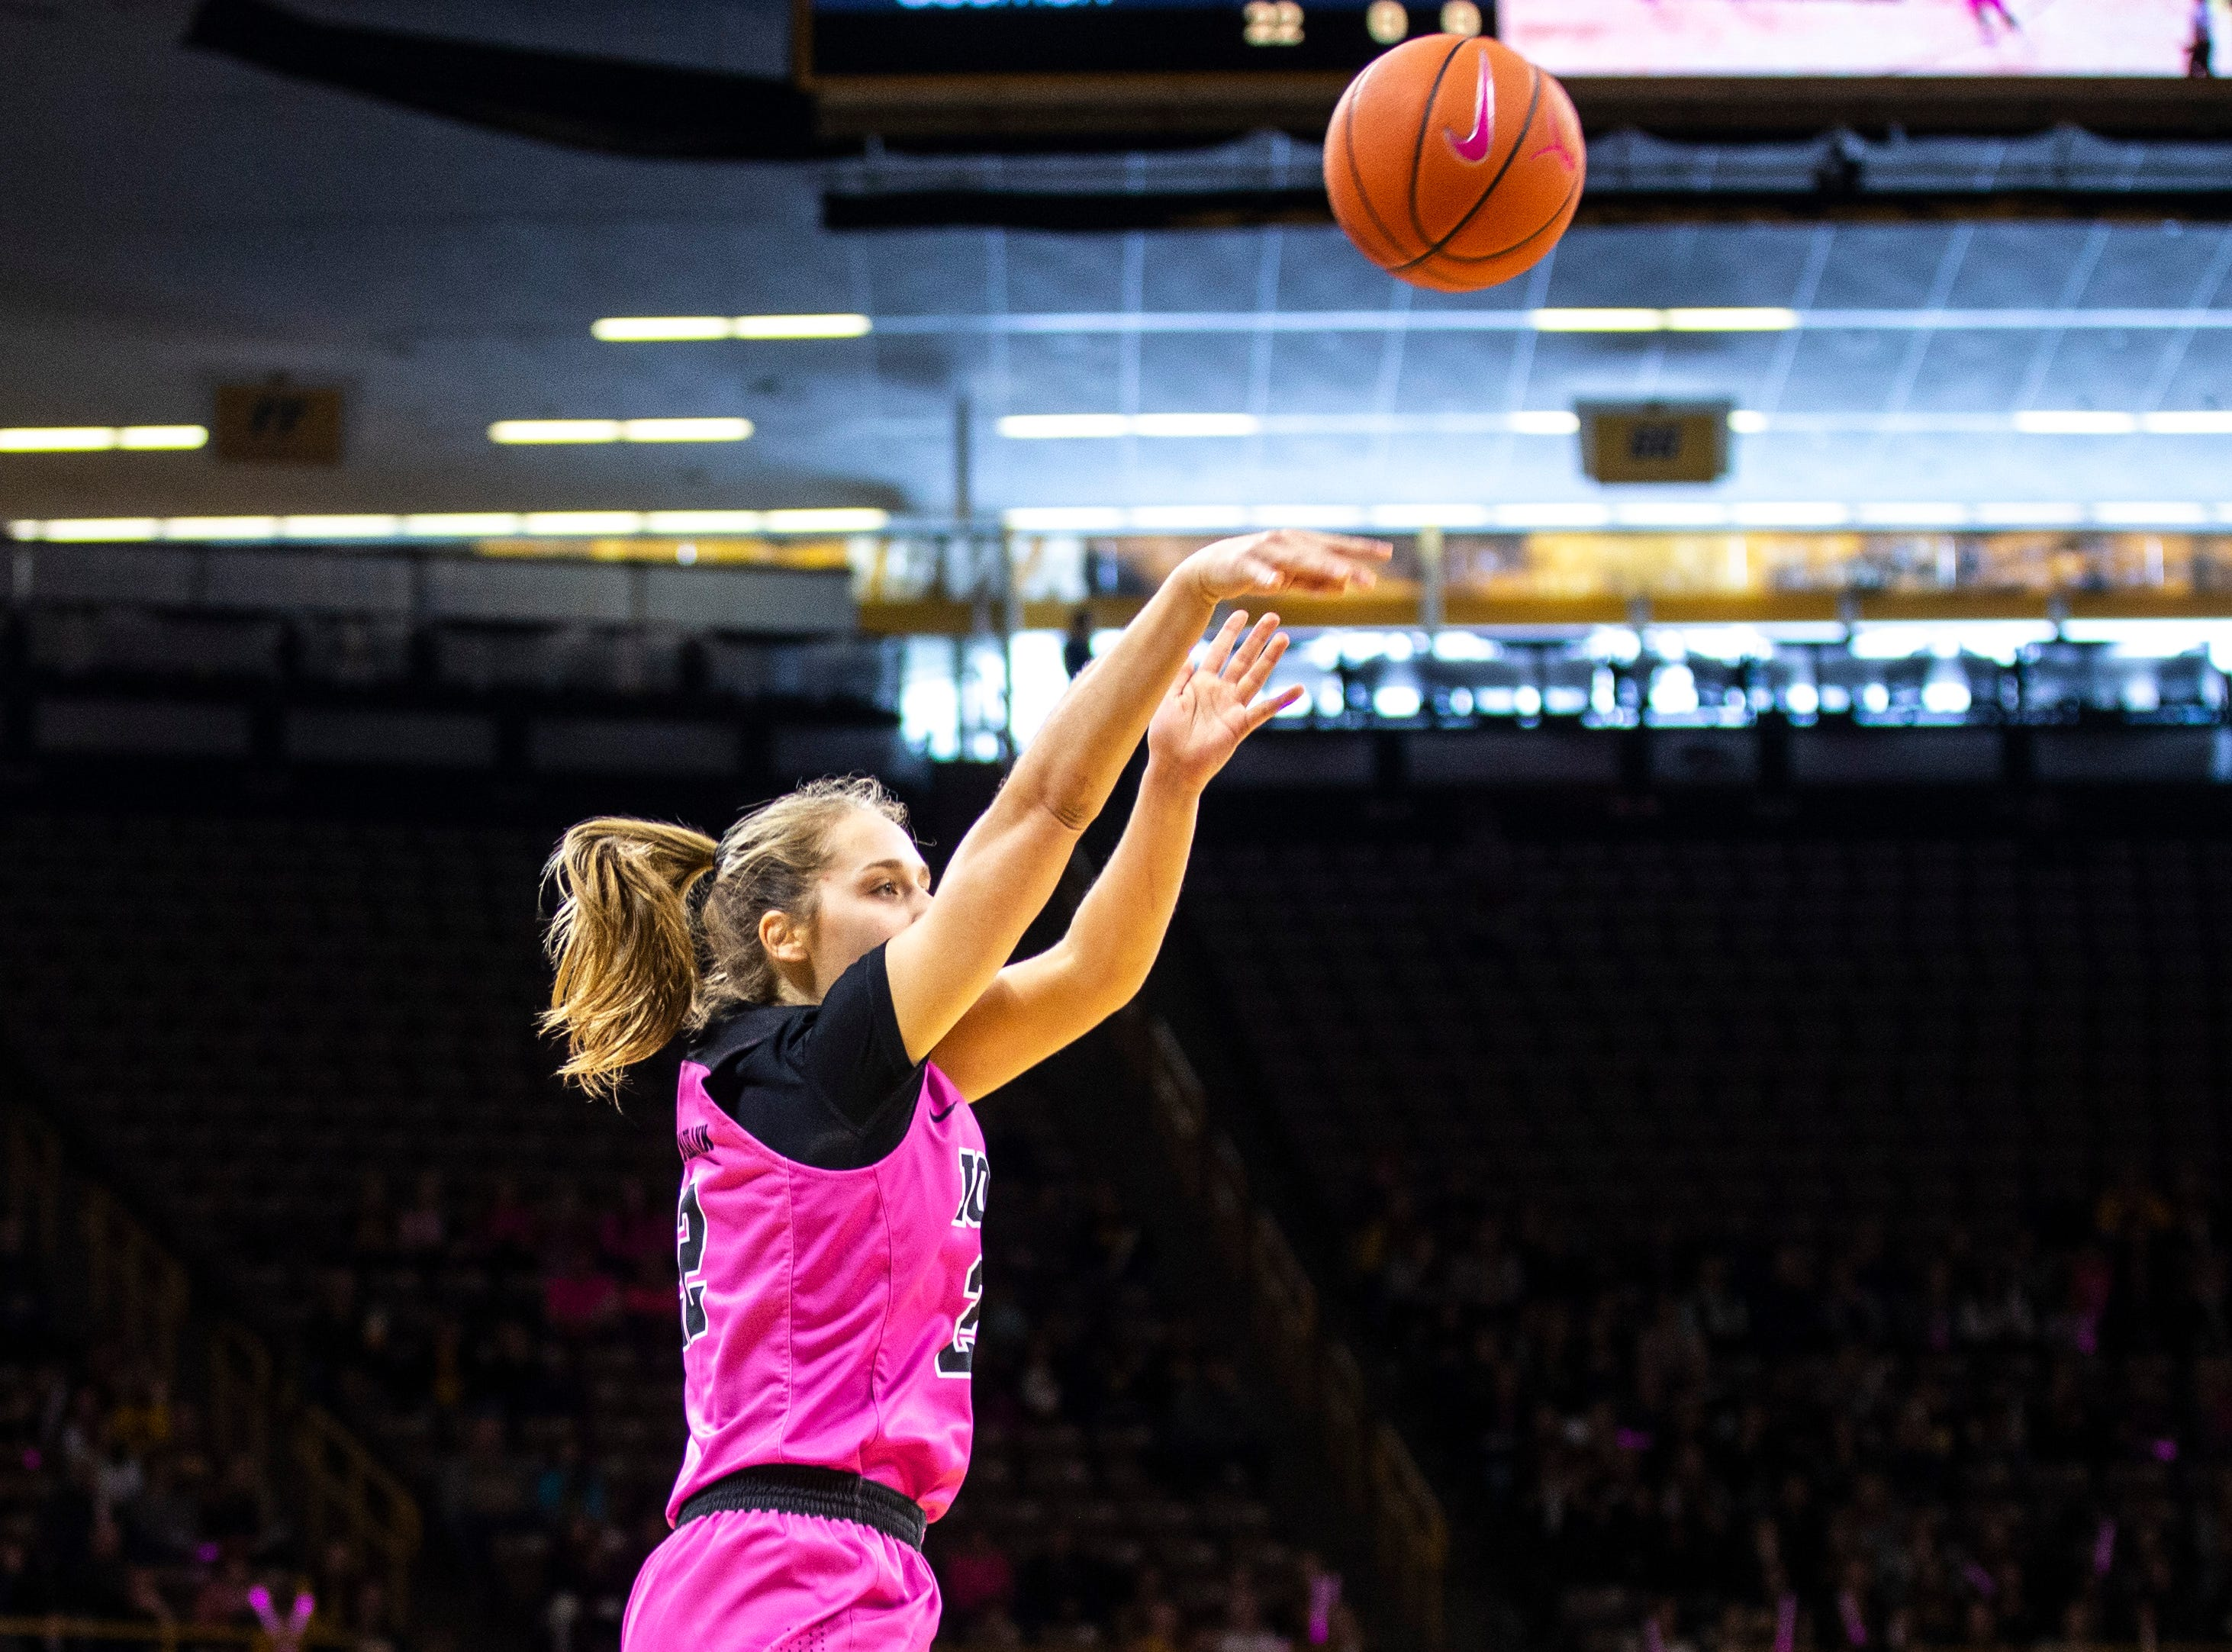 Iowa guard Kathleen Doyle (22) attempts a 3-point basket during a NCAA Big Ten Conference women's basketball game on Sunday, Feb. 17, 2019 at Carver-Hawkeye Arena in Iowa City, Iowa.